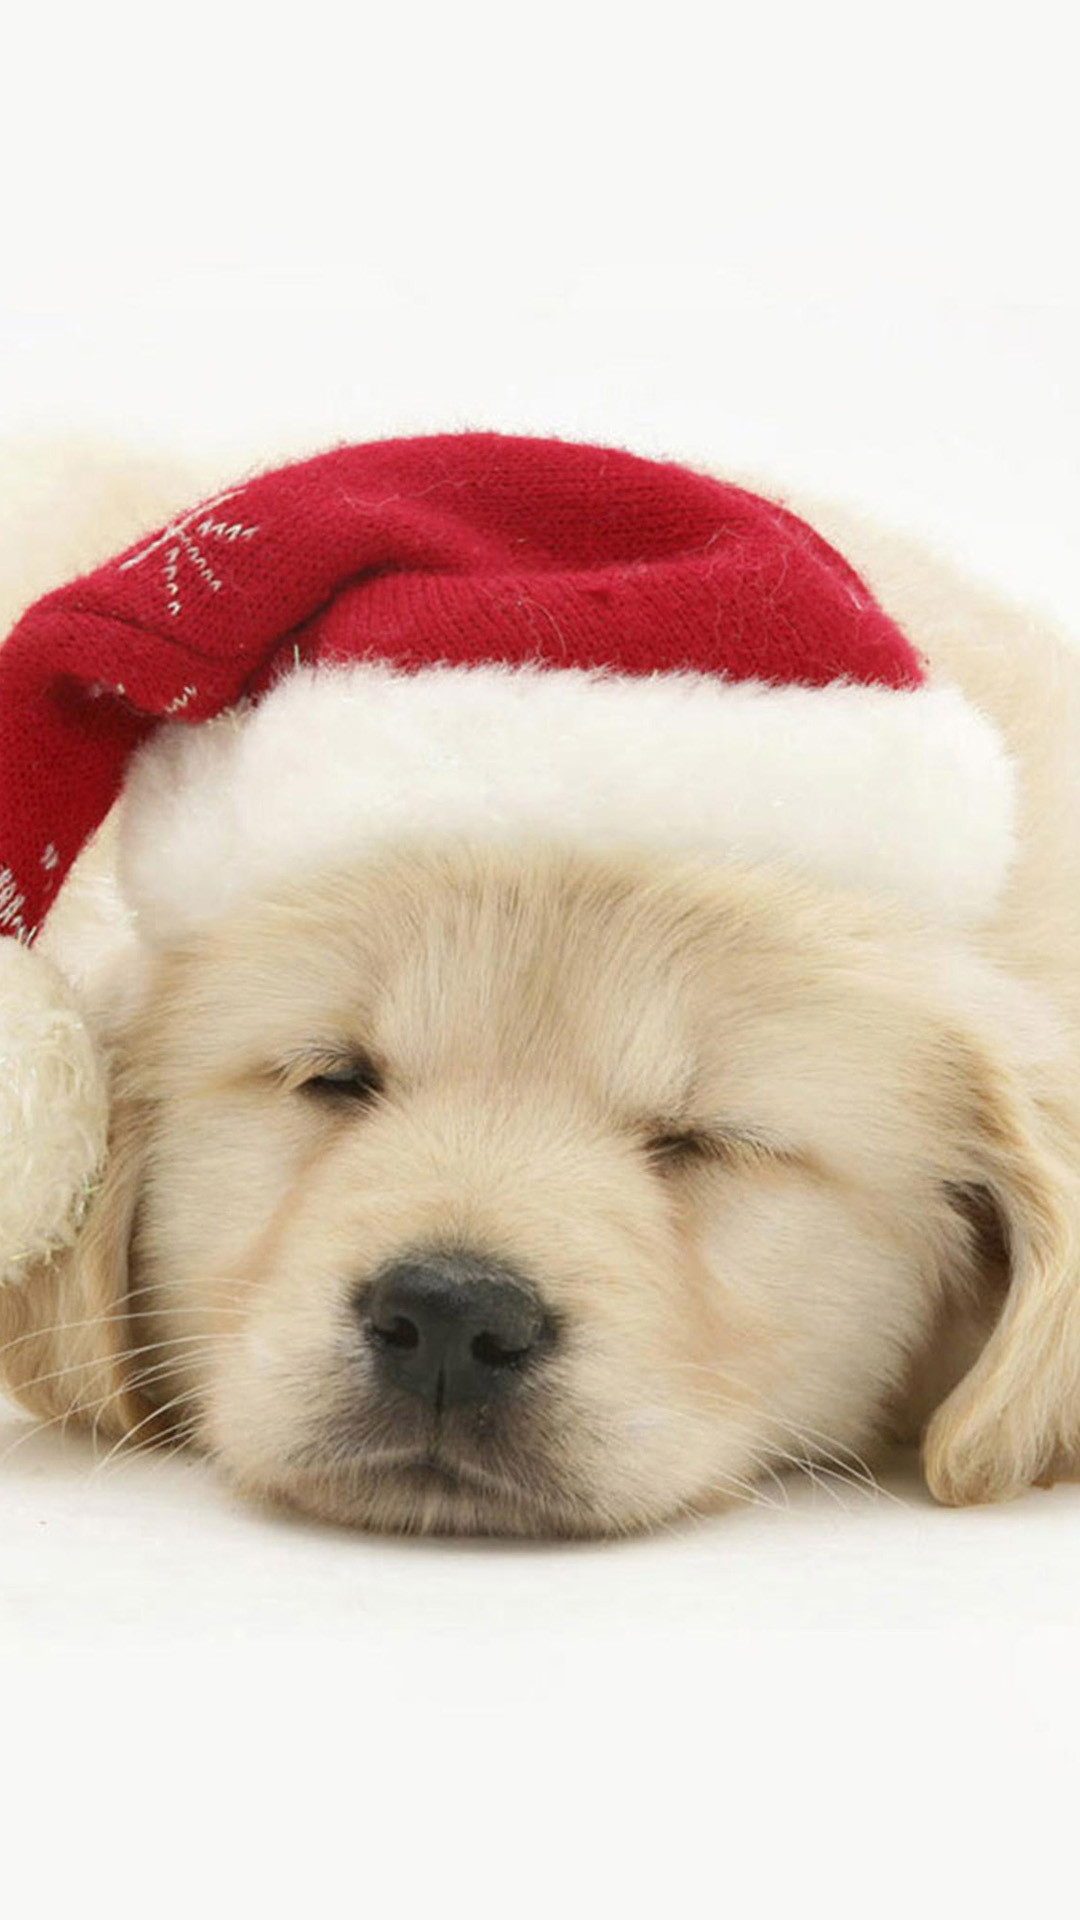 1080x1920 Cute Puppy In Christmas Hat iPhone 6 wallpaper